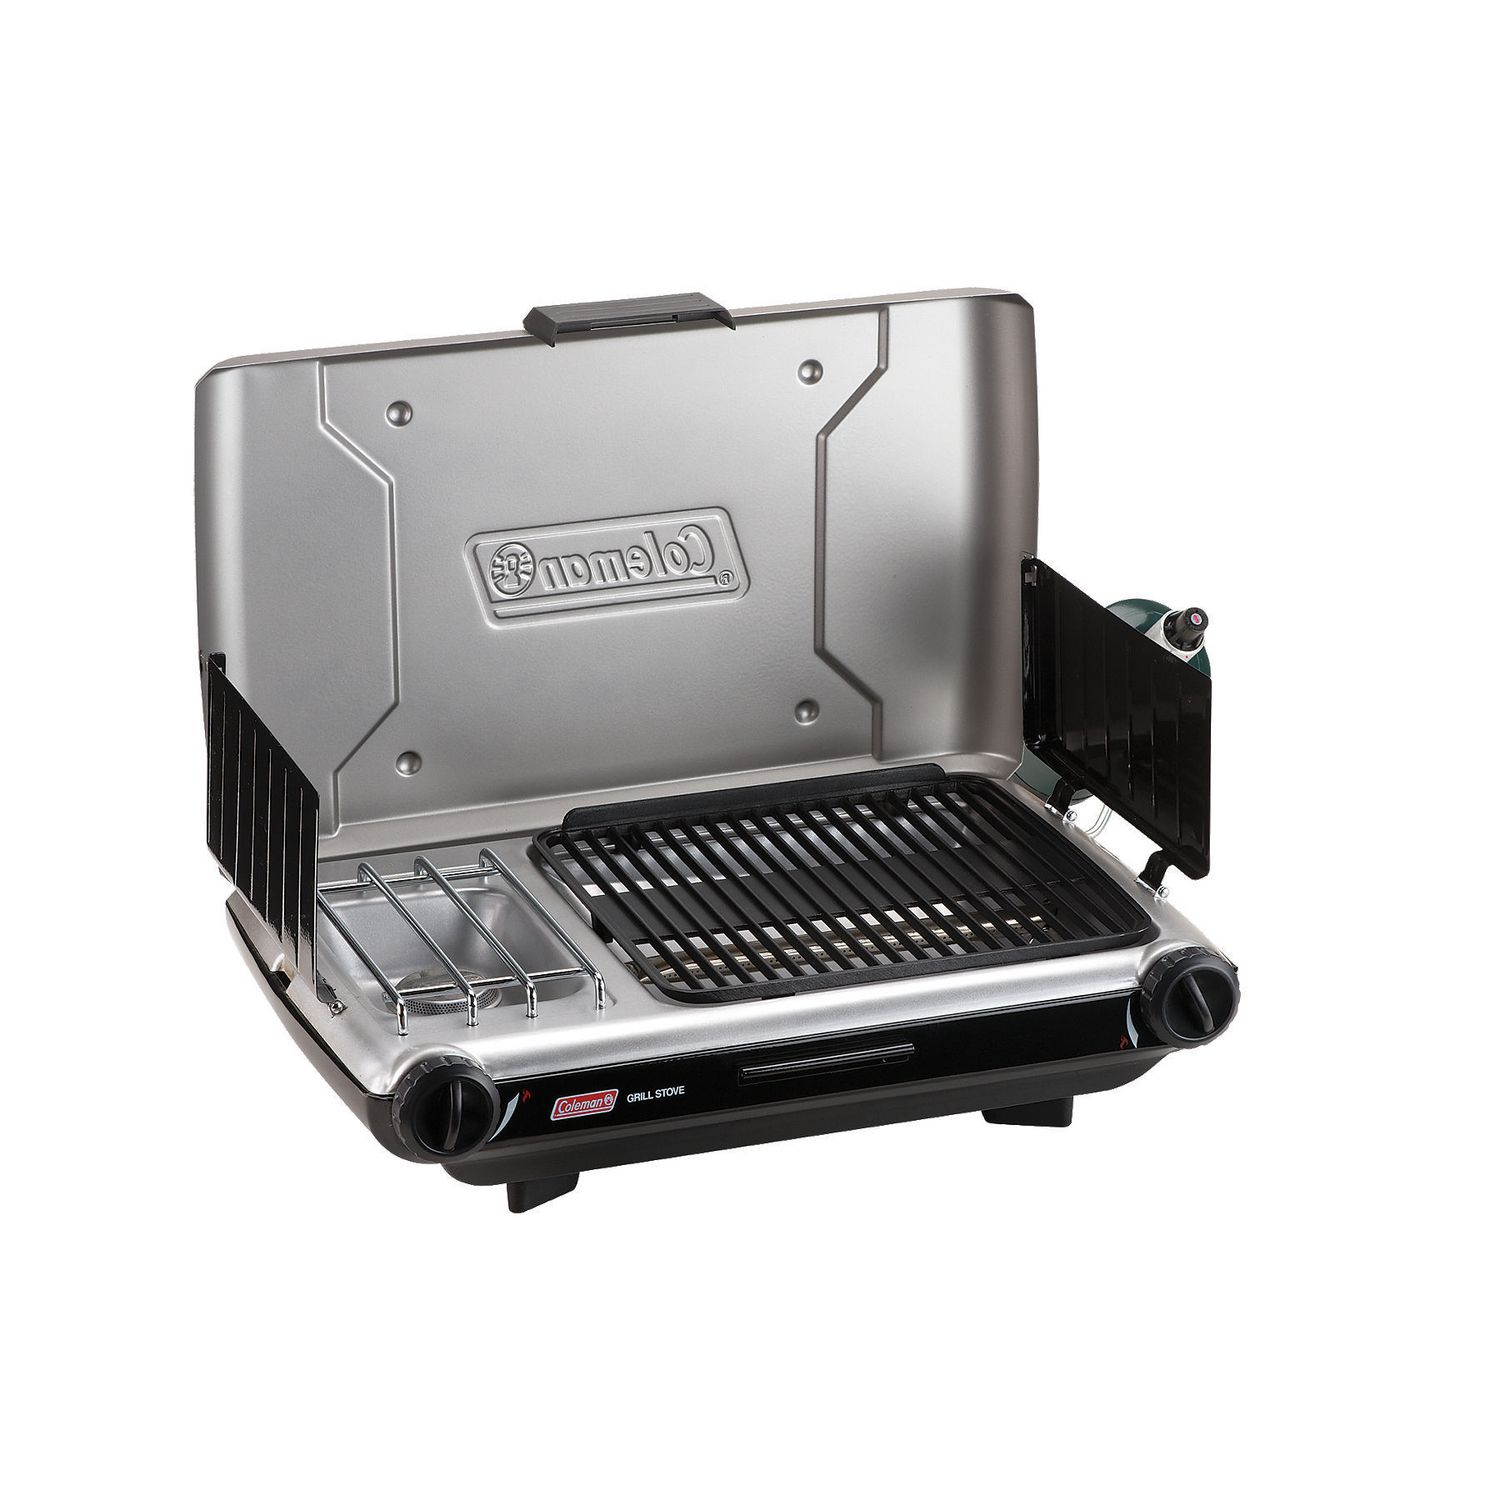 Coleman PerfectflowTM Grill Stove